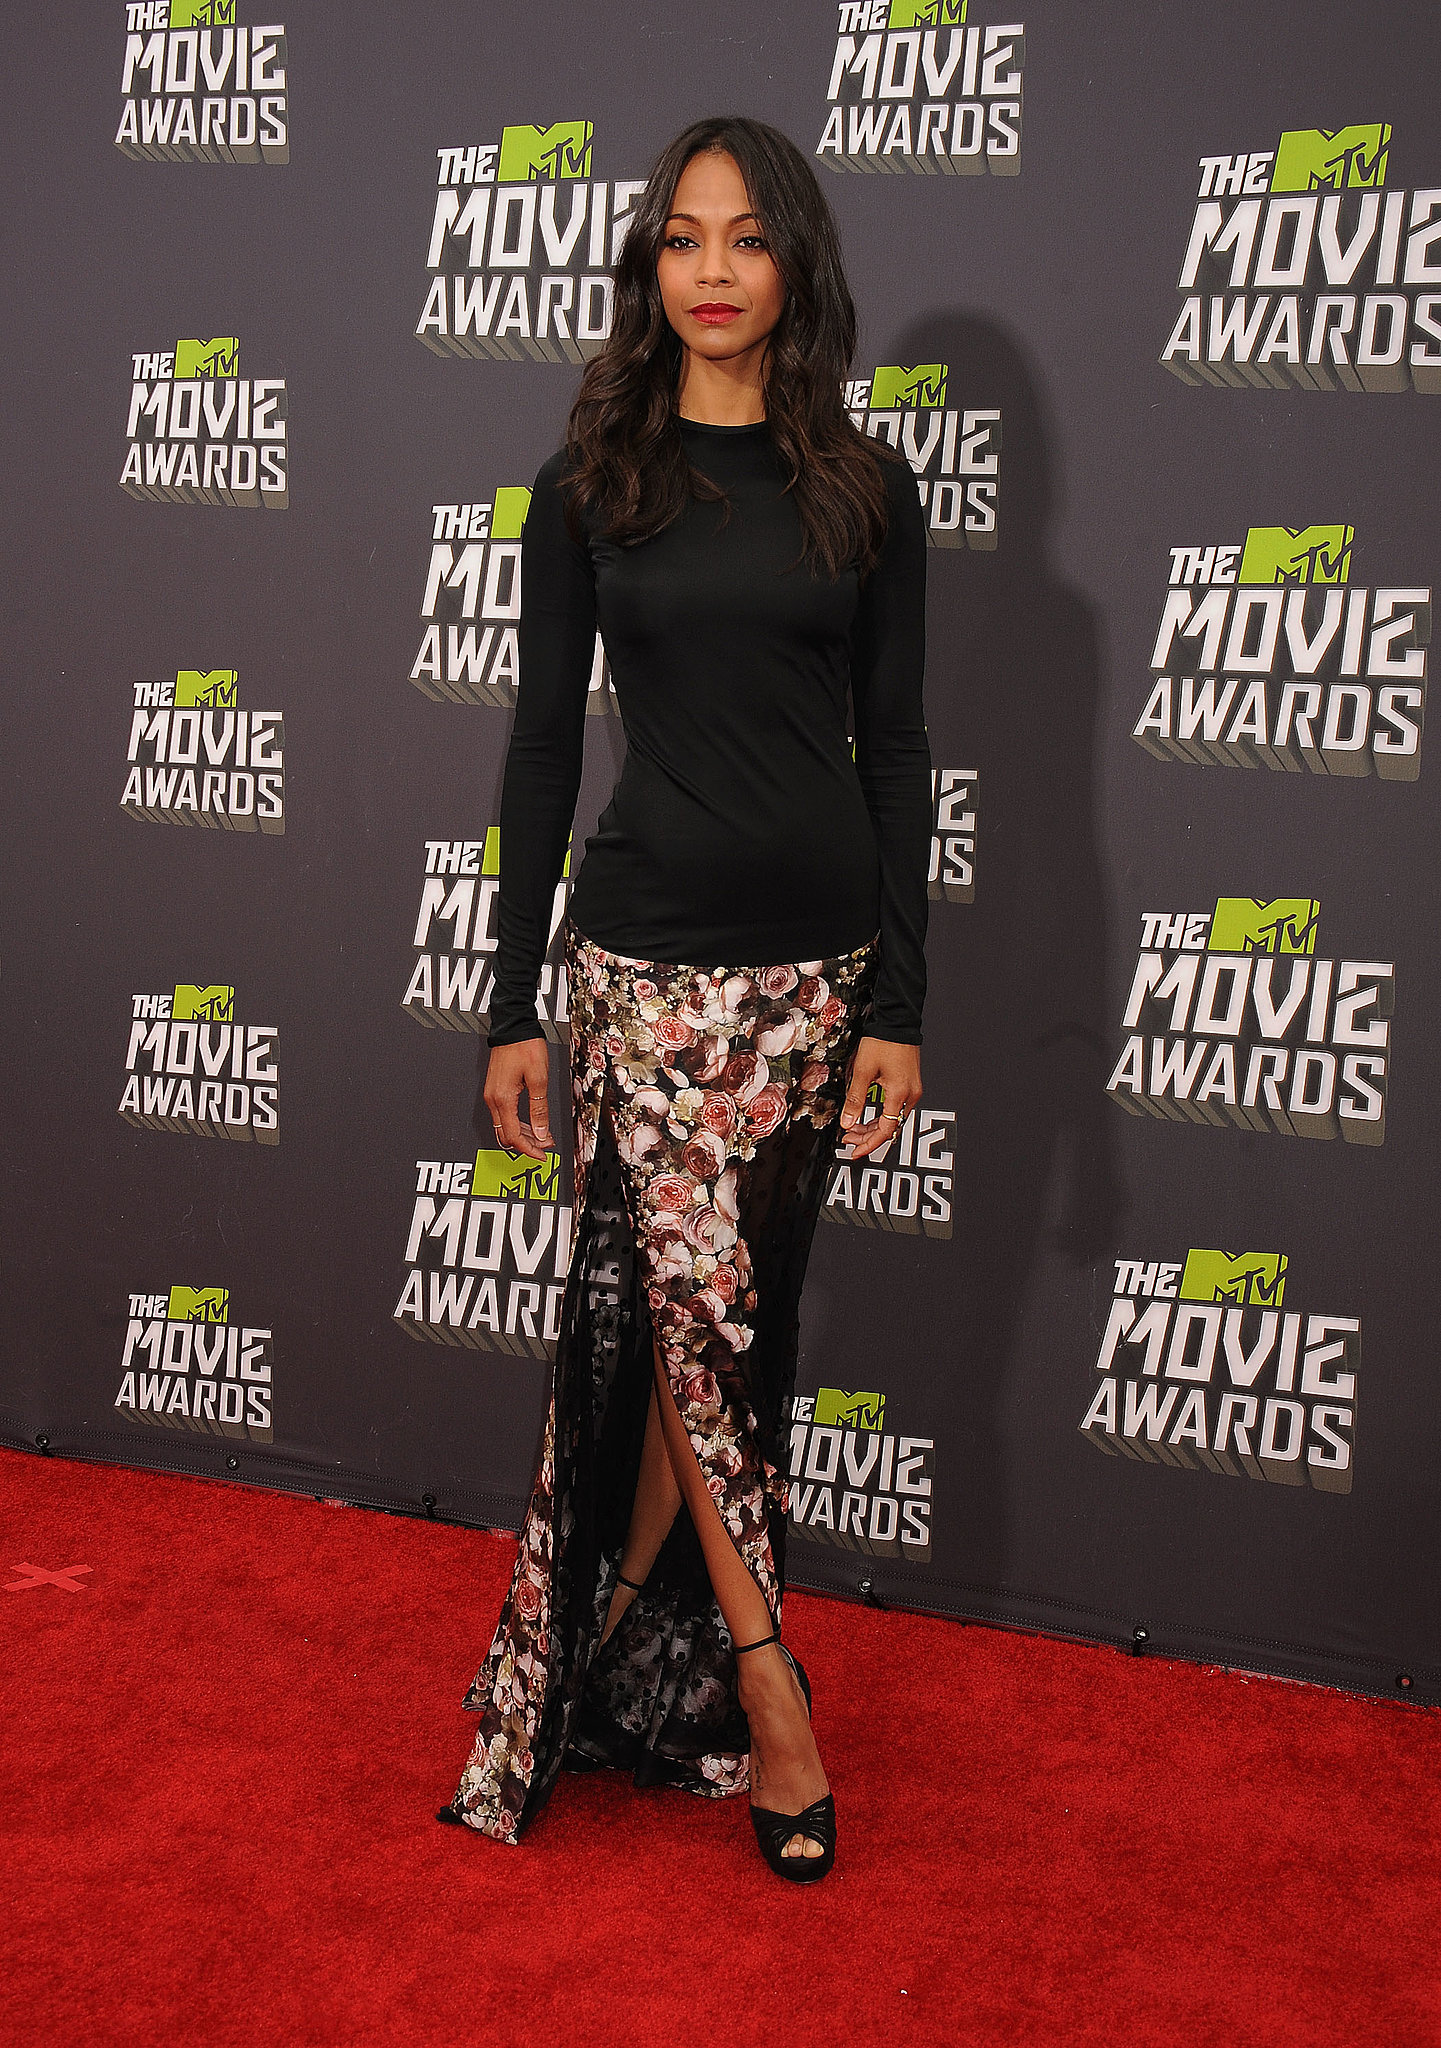 Zoe took the red carpet at the 2013 MTV Movie Awards in this cool-girl play on eventwear from the Givenchy Fall 2013 collection.